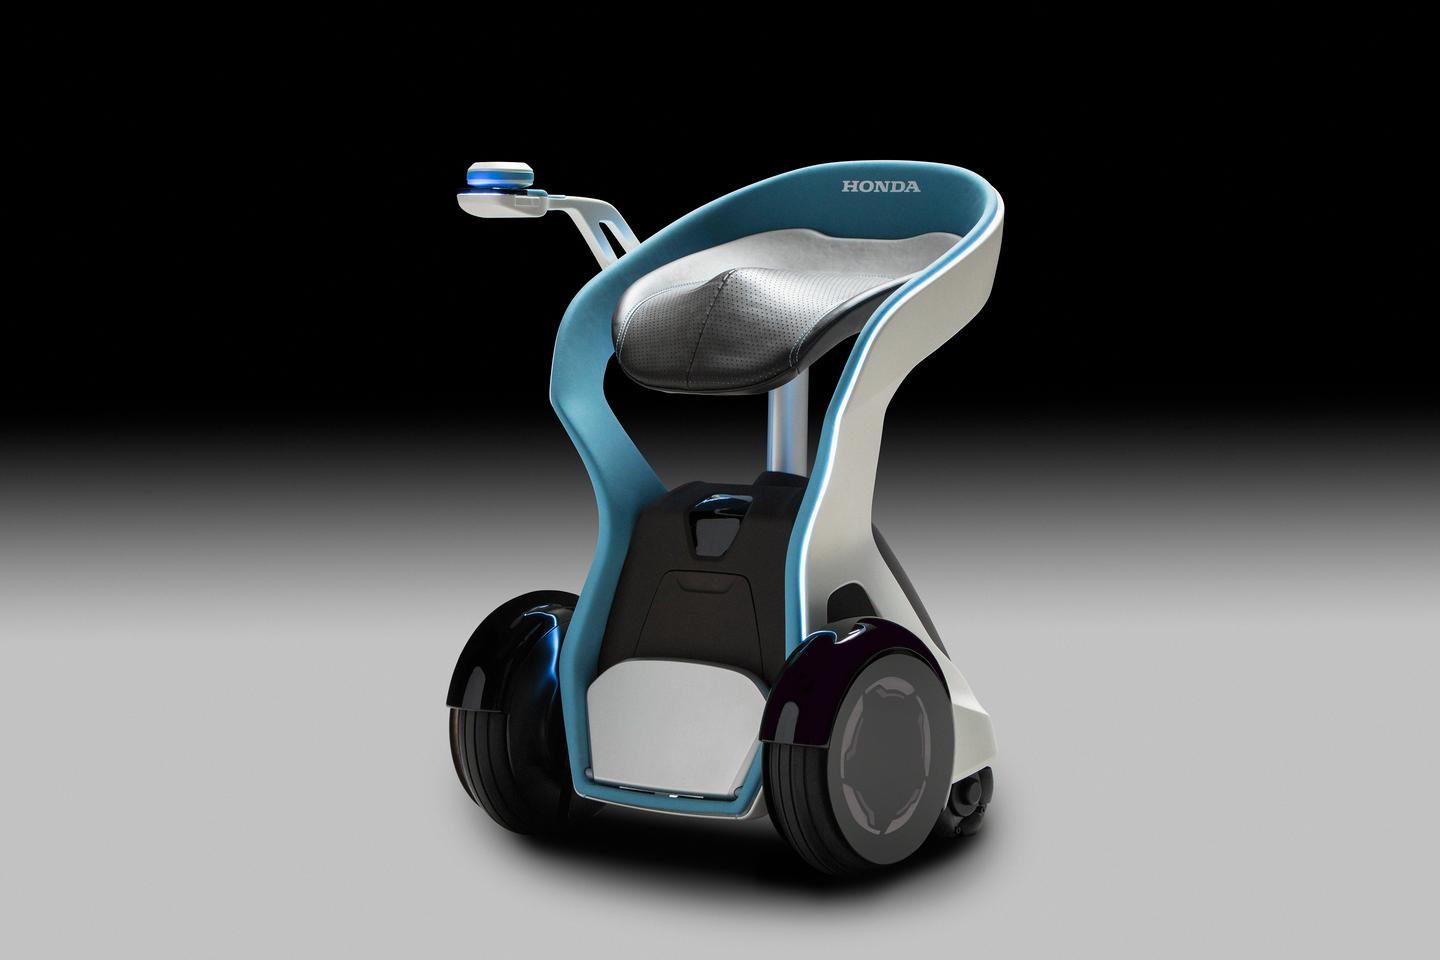 Honda's 3E-B18 concept has been developed to help people get around with ease and in comfort